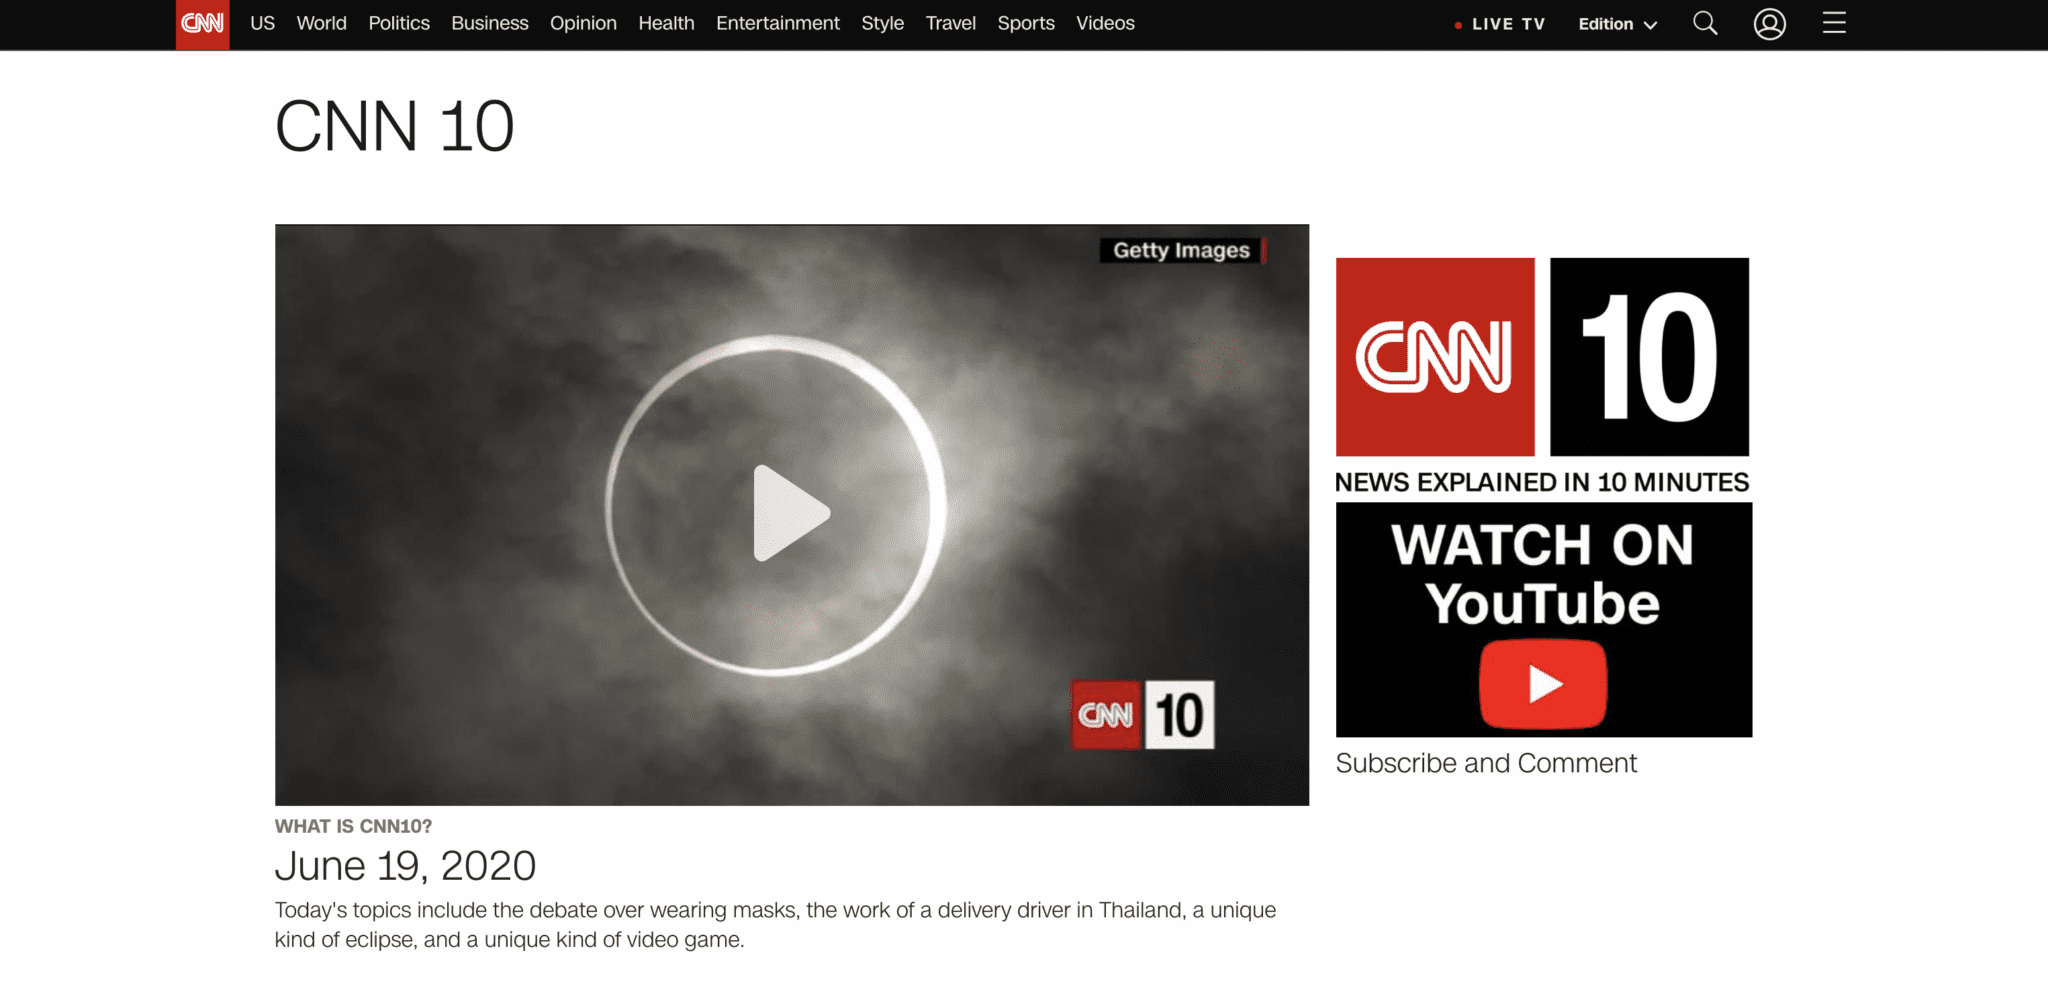 CNN 10 for Current Events